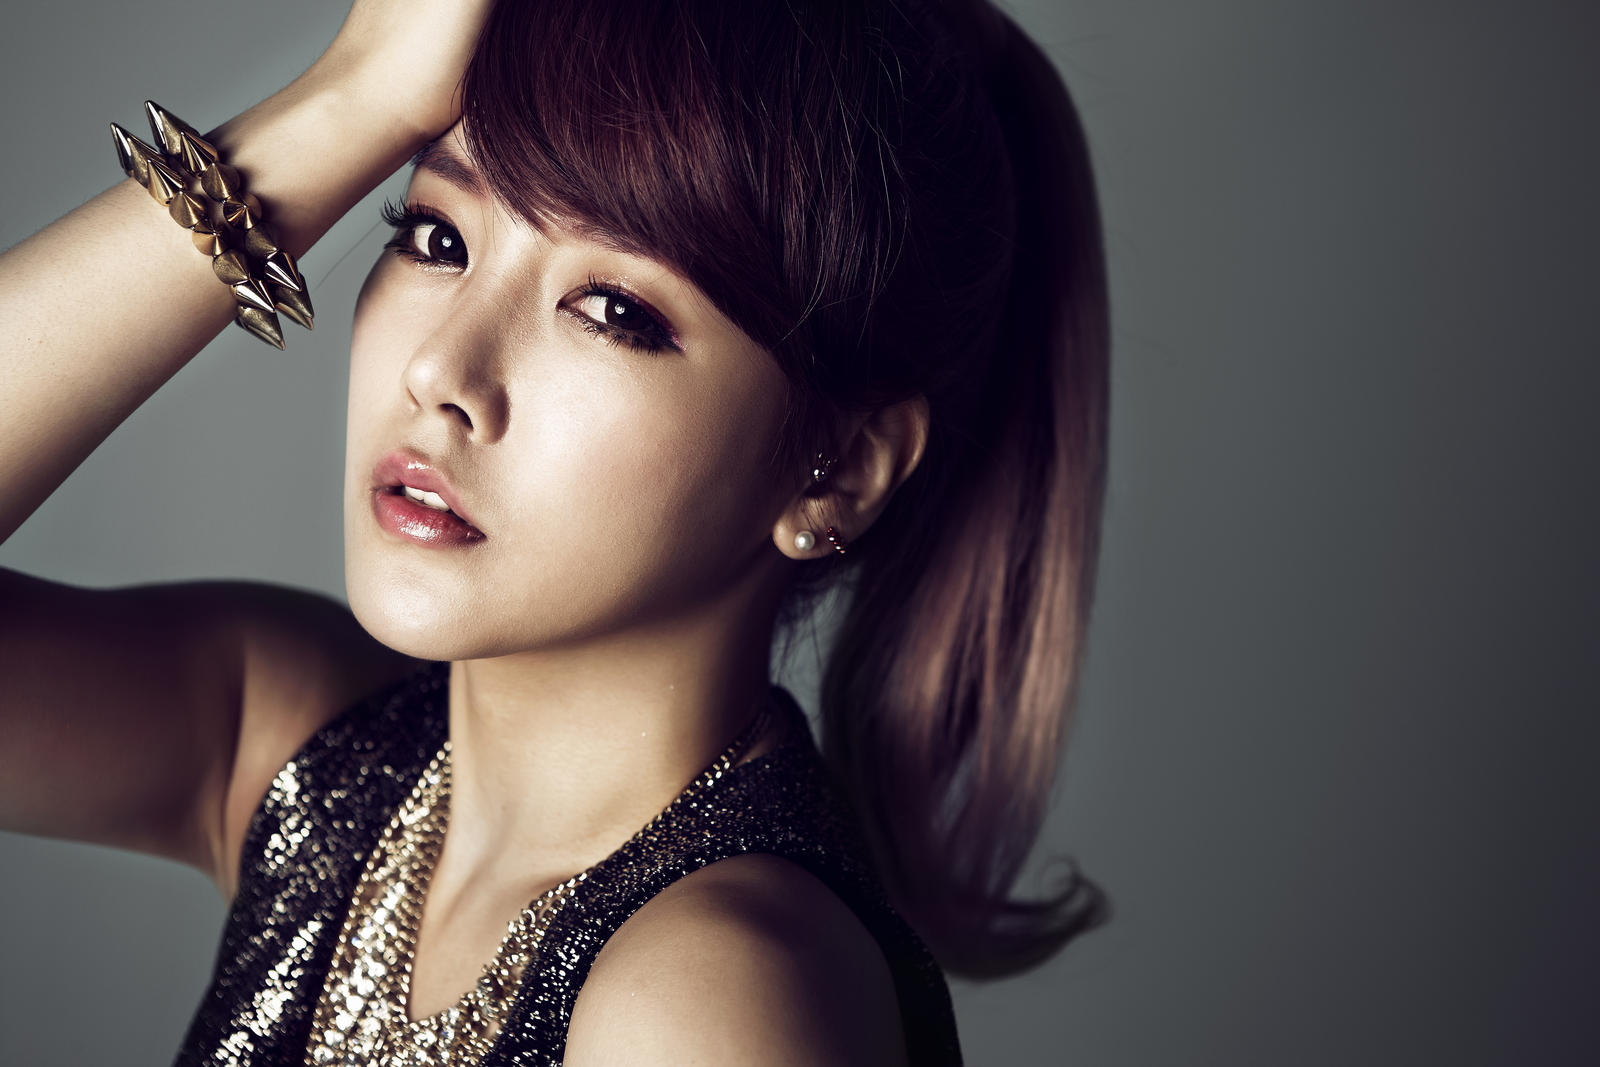 T-ara's Soyeon Under Fire for Supposedly Dissing Senior Actress